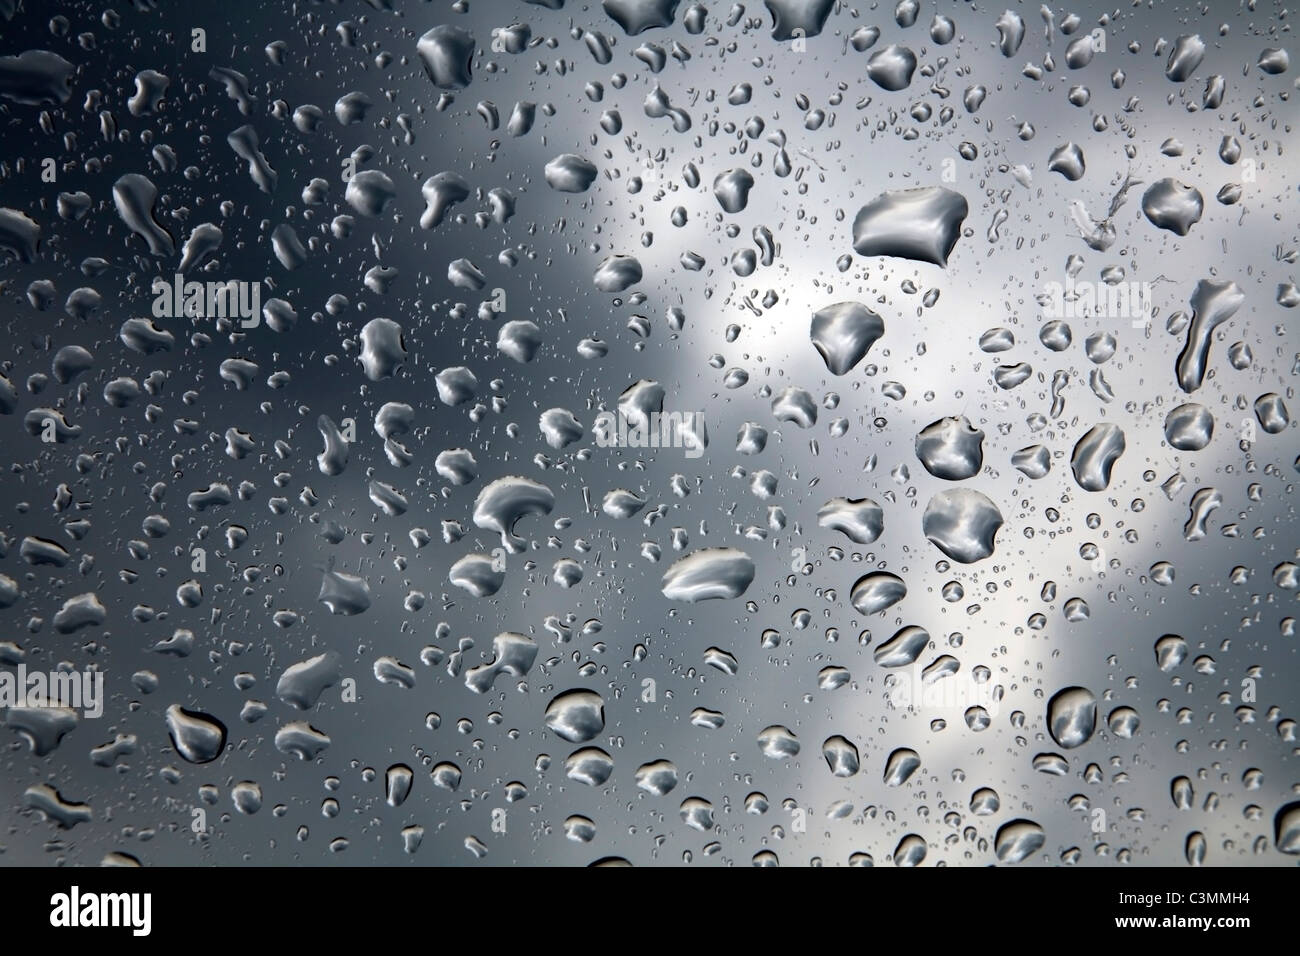 beads on the car glass - Stock Image